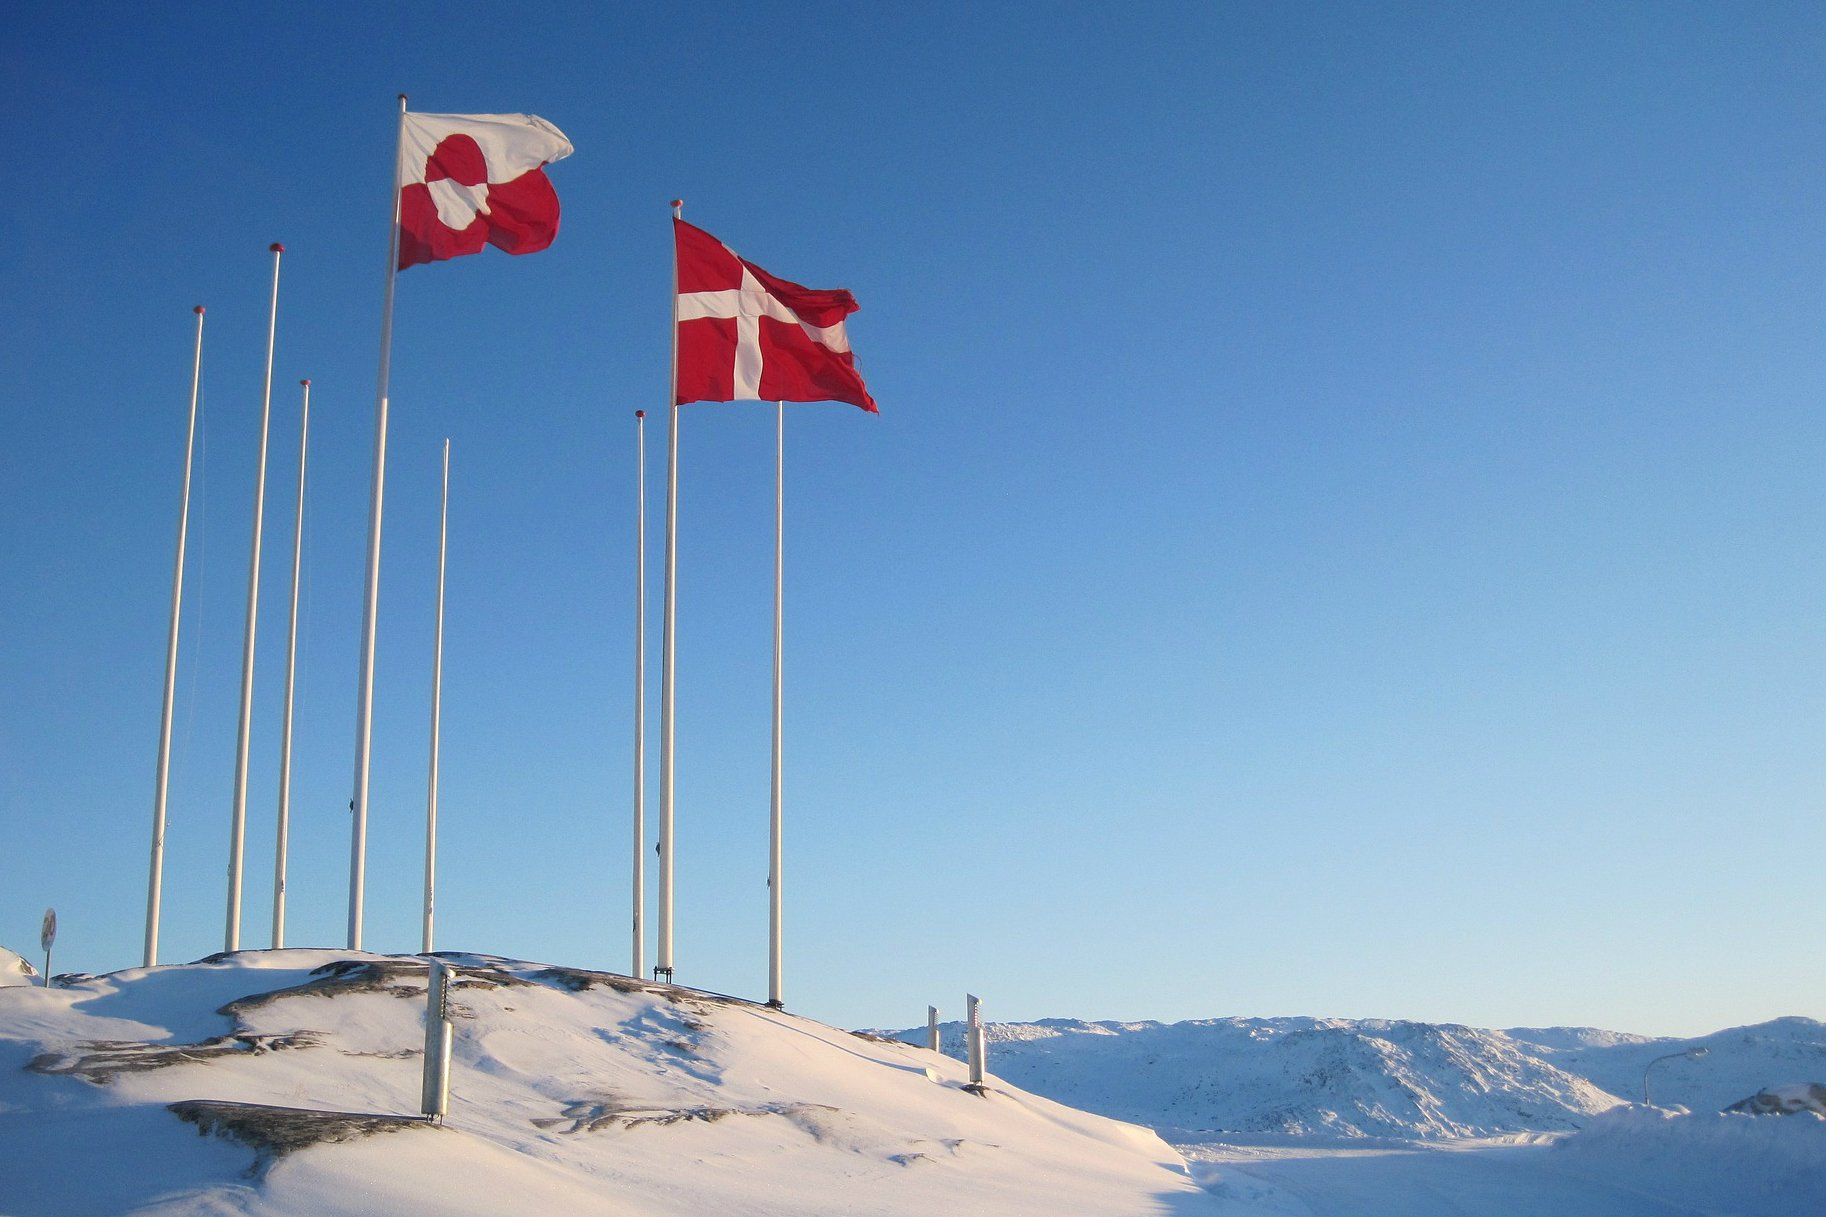 A rare poll hints at real differences between Danish and Greenlandic thinking on Greenland independence